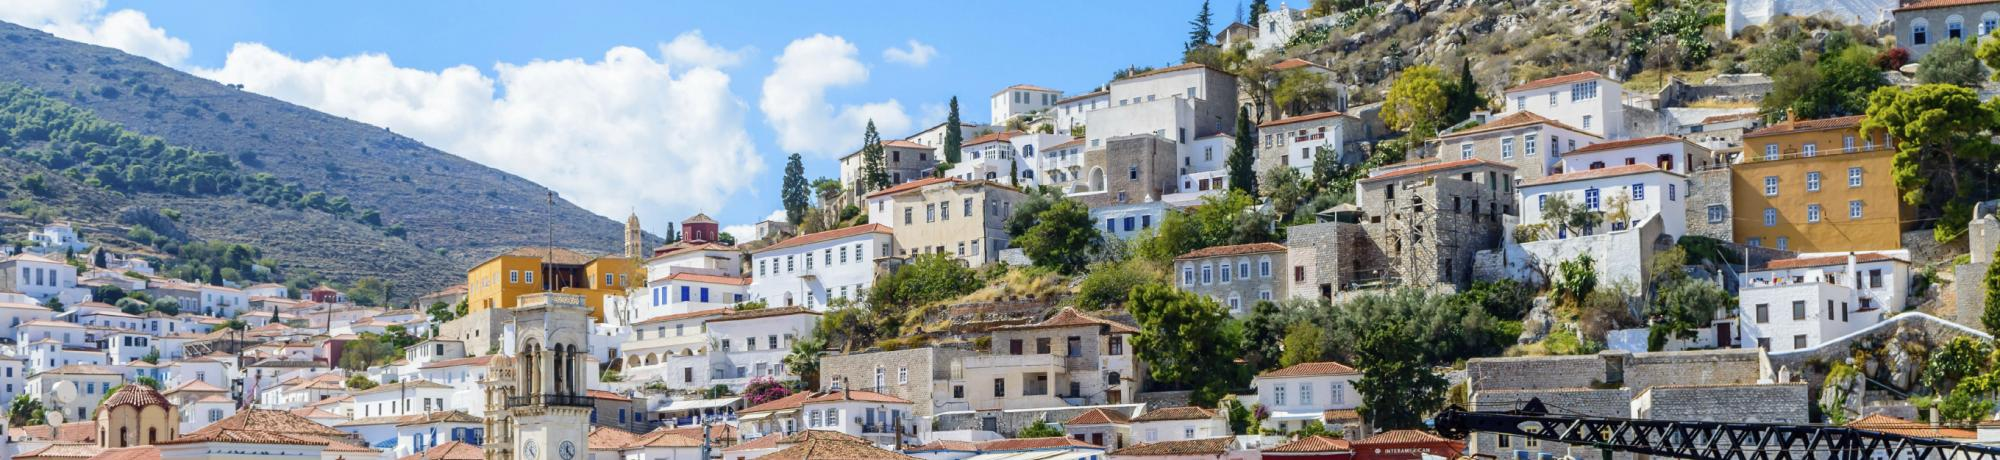 UC Davis Summer Abroad, Summer Abroad Greece, Writers in Greece Program, Header Image, Travel Page